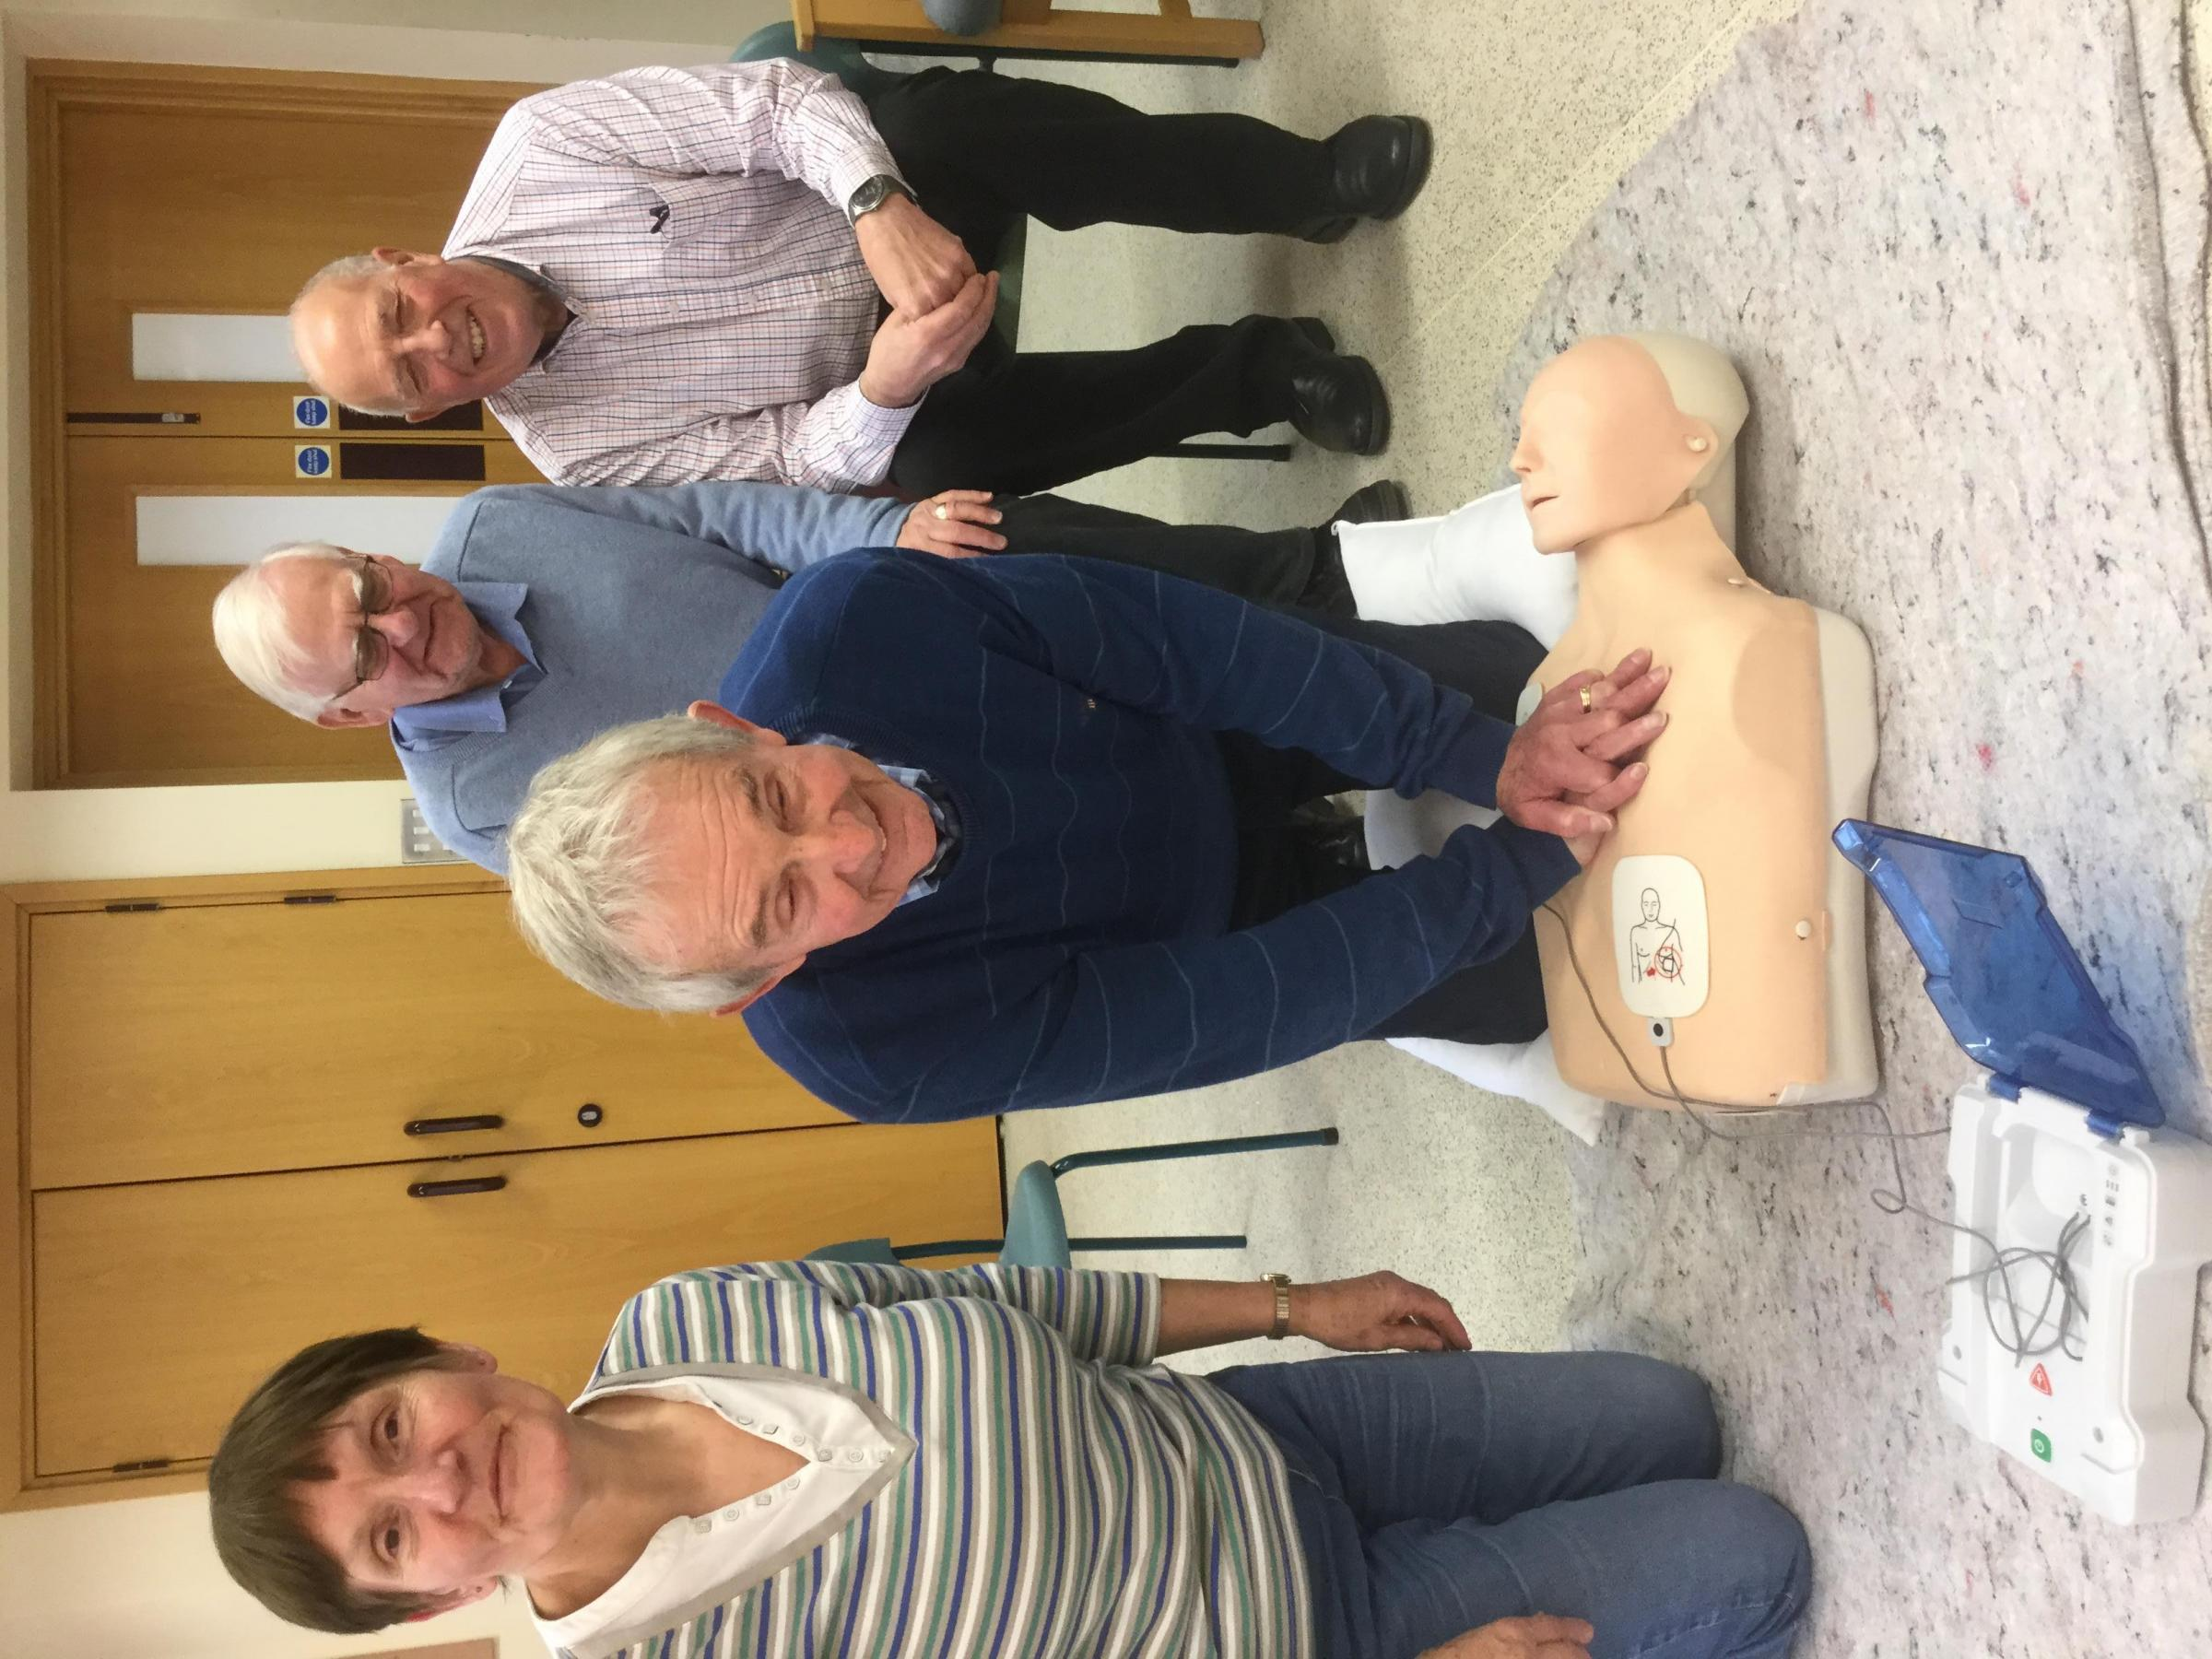 Don Pierce takes part in the Heartstart training with Tony Birch and Mike Valentine with Julie Rich from Heartstart